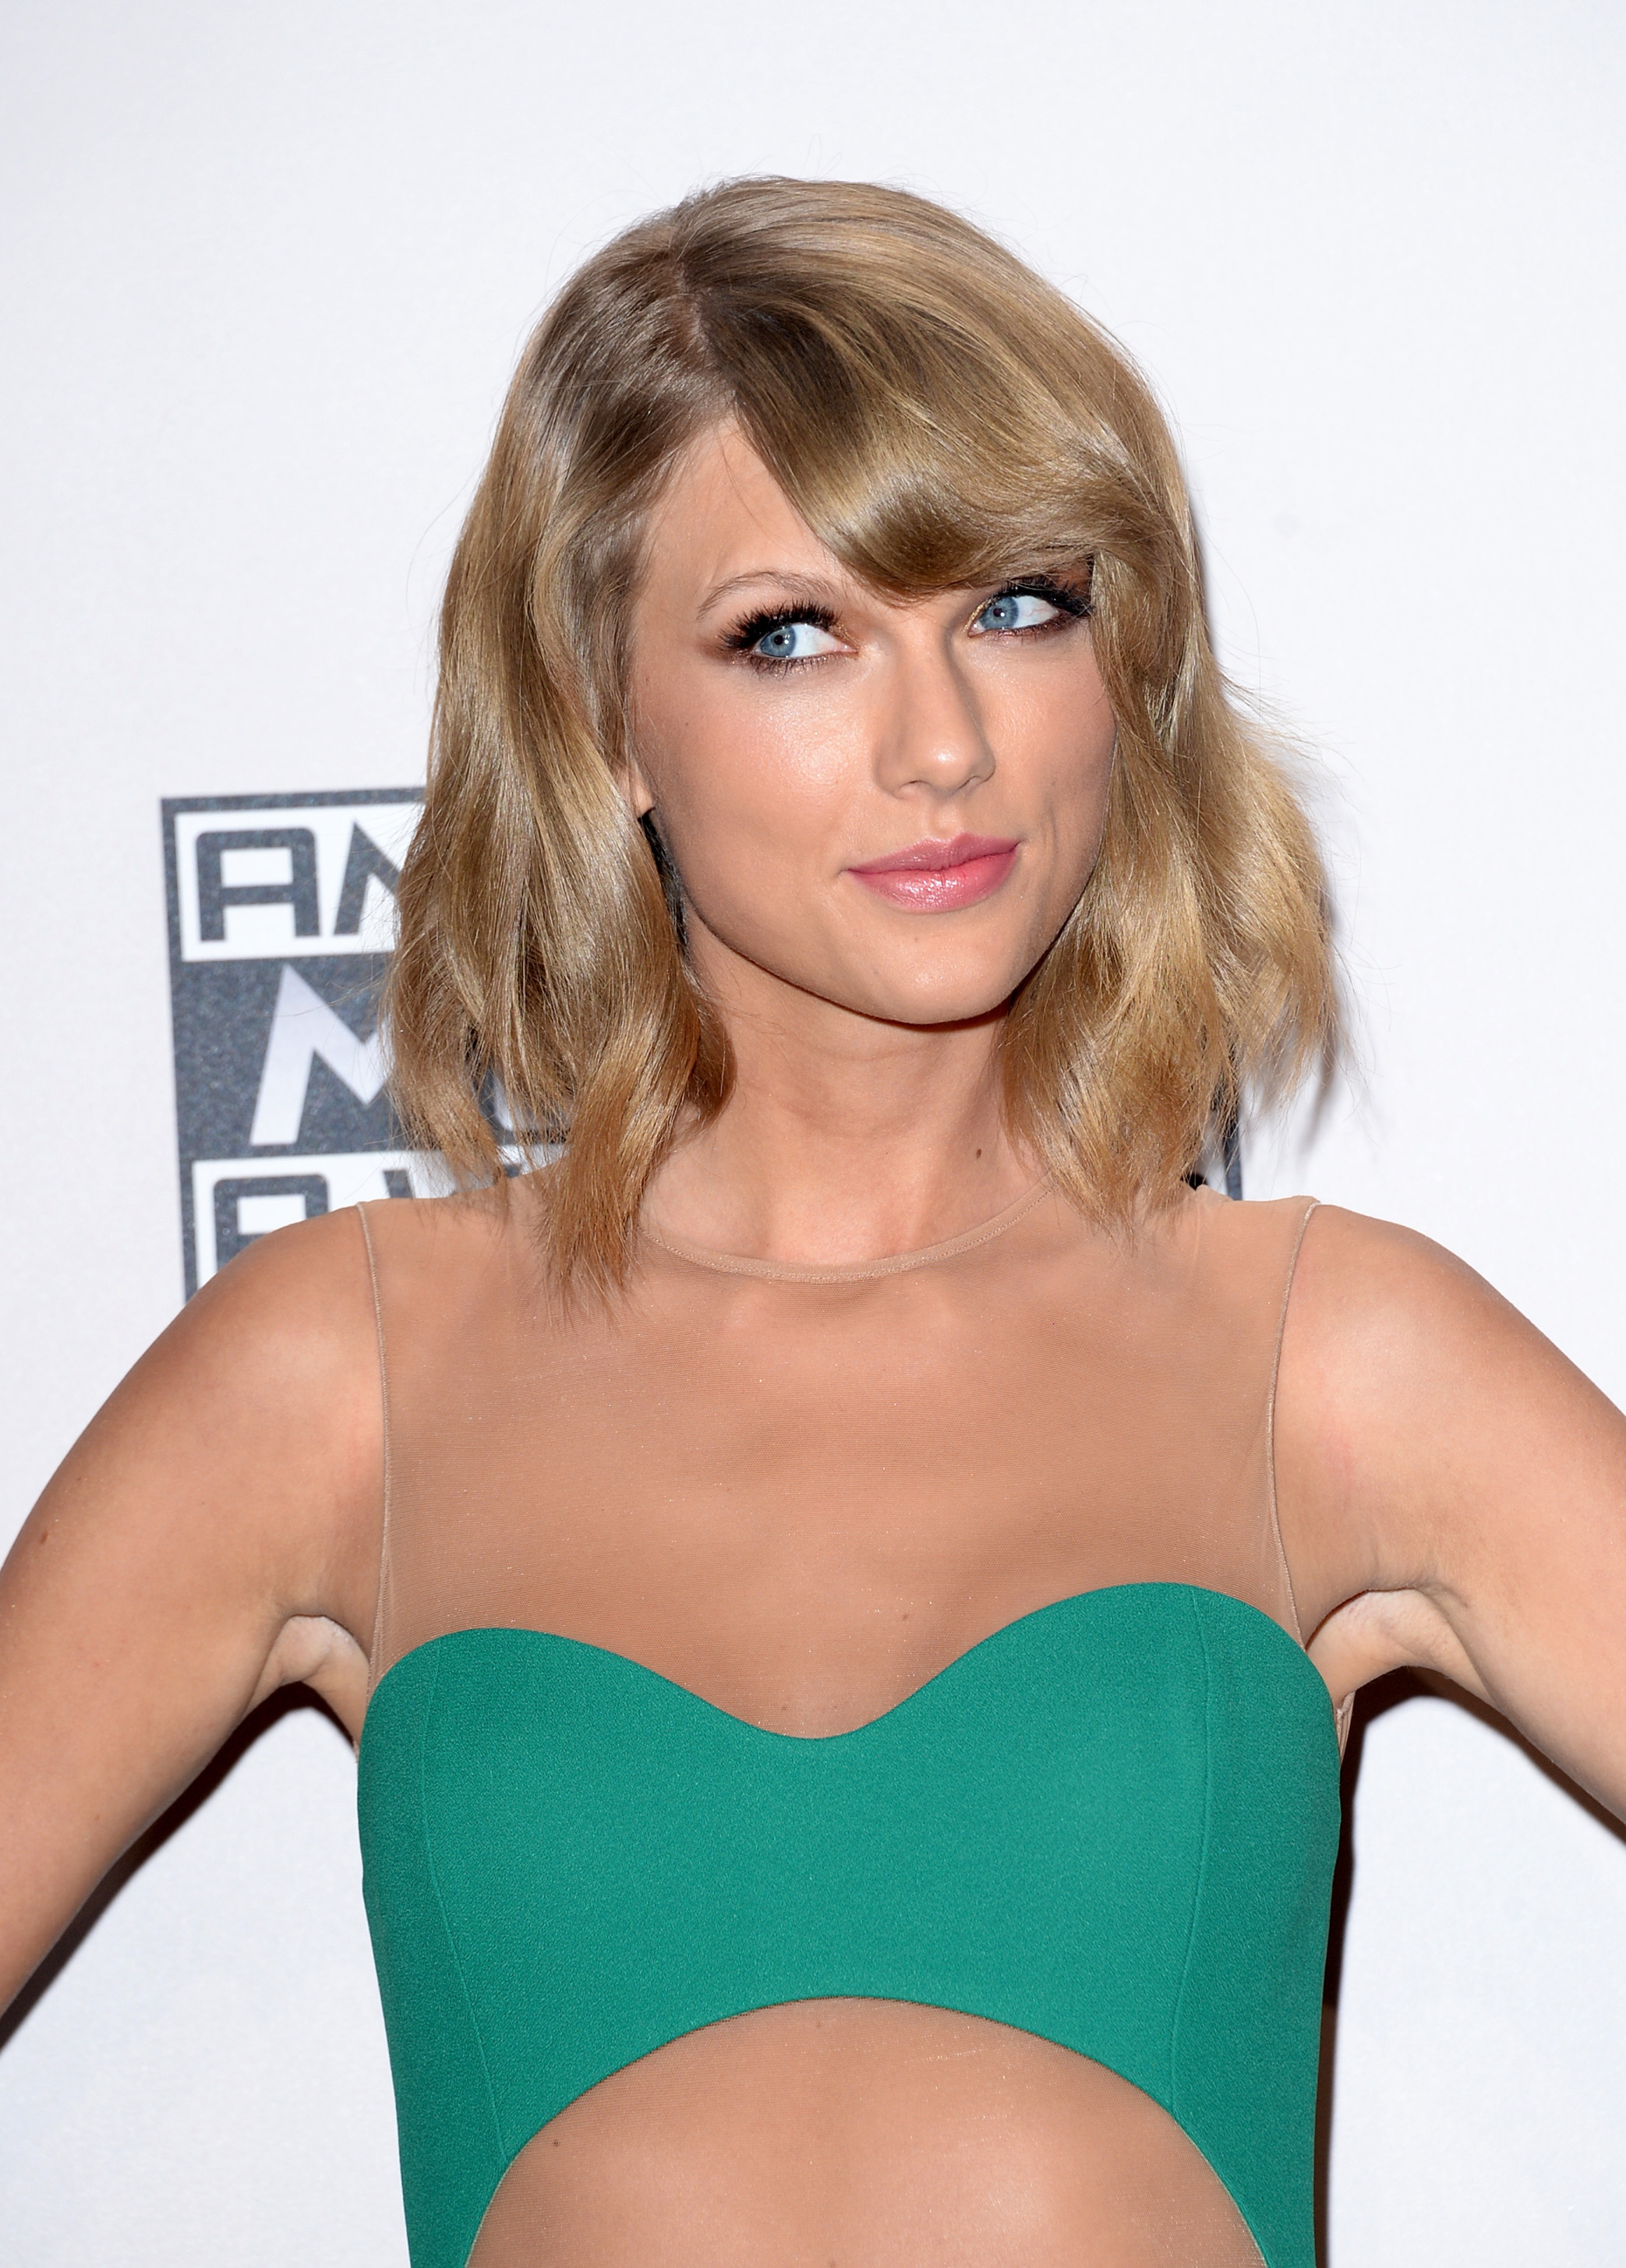 Taylor Swift nudes (59 photos), pics Sexy, Twitter, legs 2020